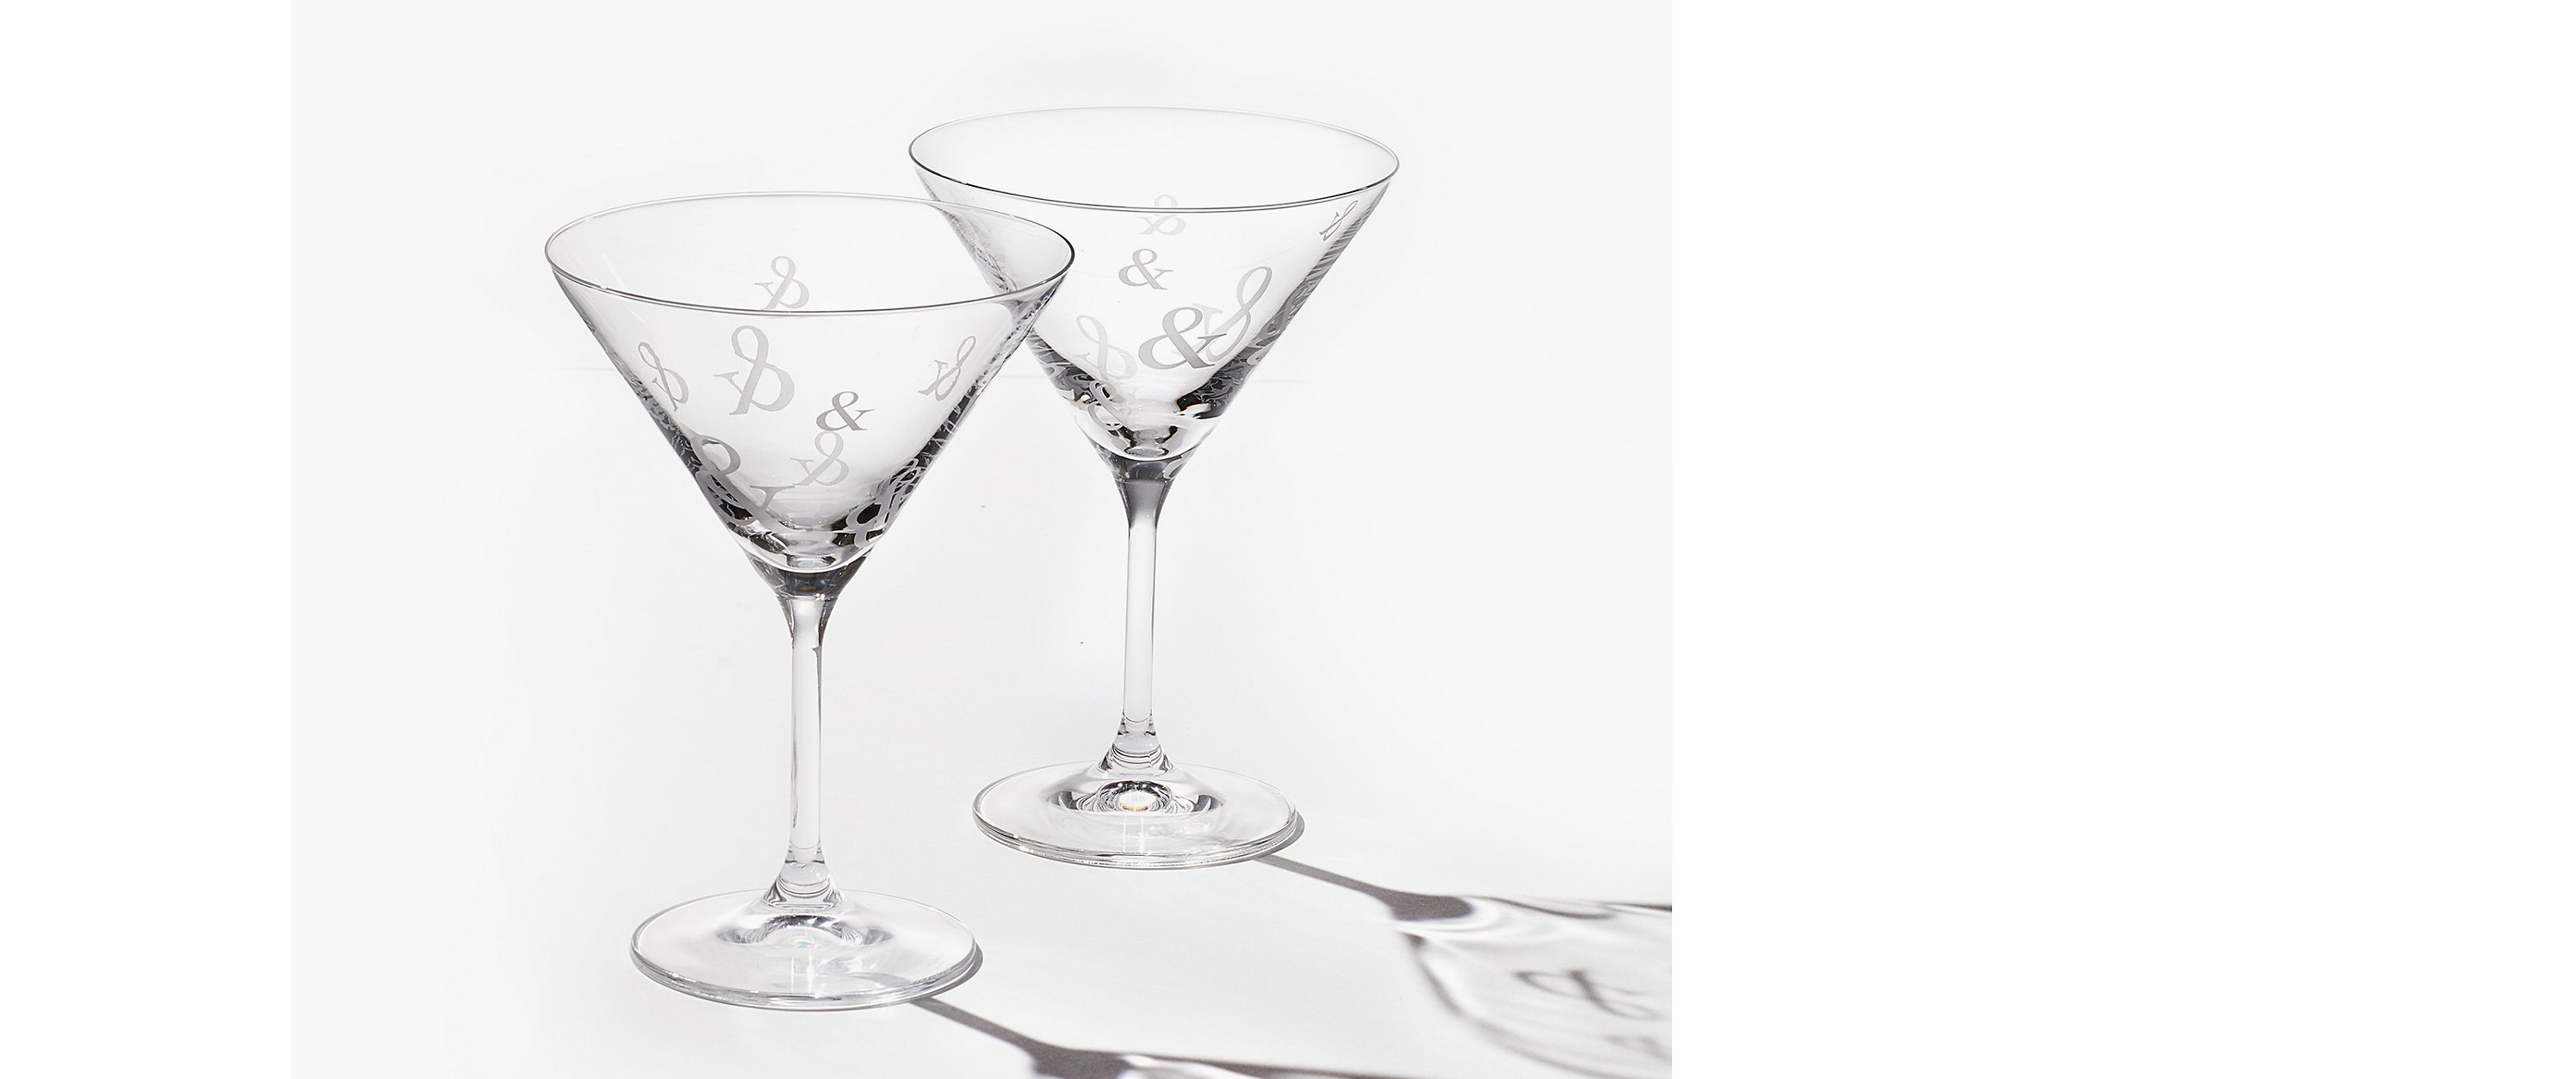 Tiffany & Co. Martini Glass